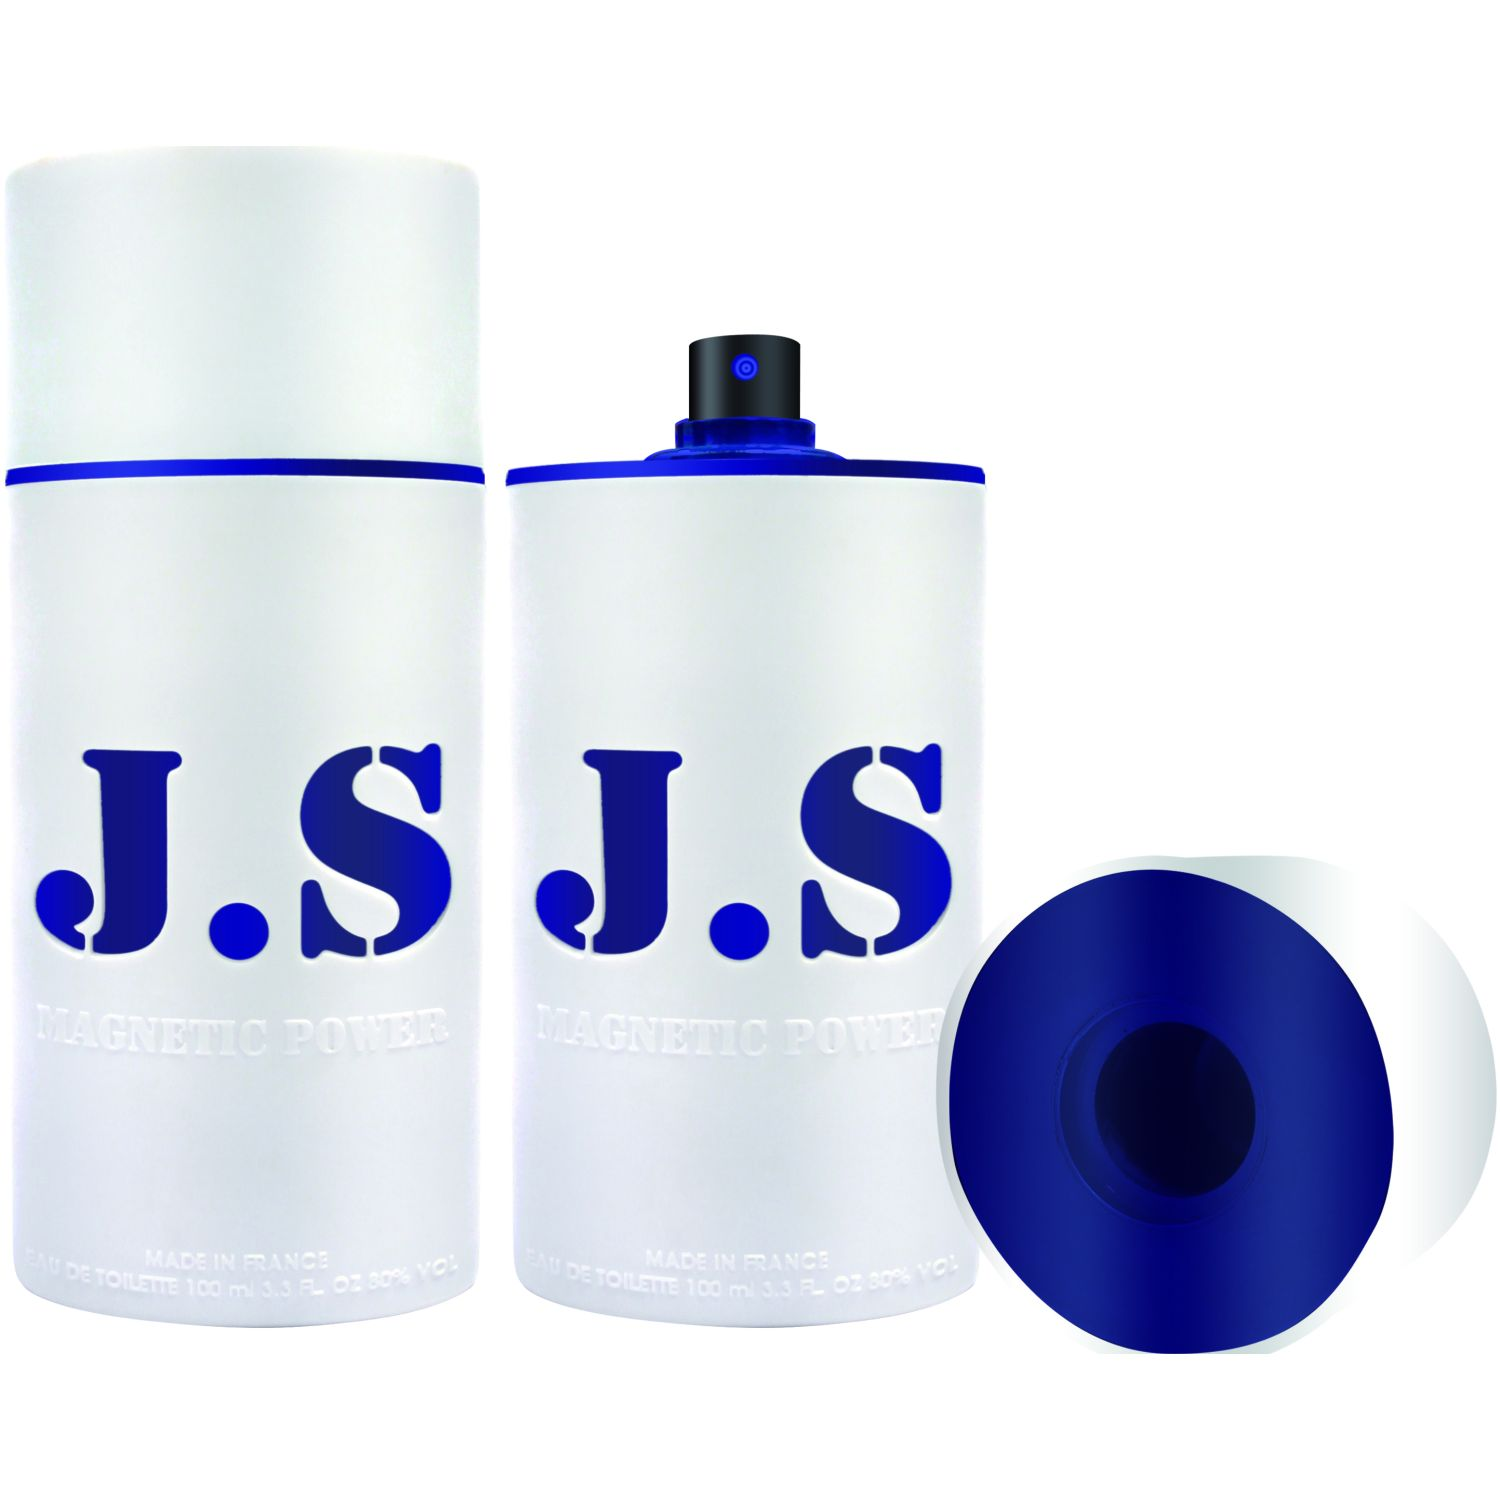 JEANNE ARTHES Joe Sorrento Magnetic Pow Navy 100ml Blanco / azul Perfume